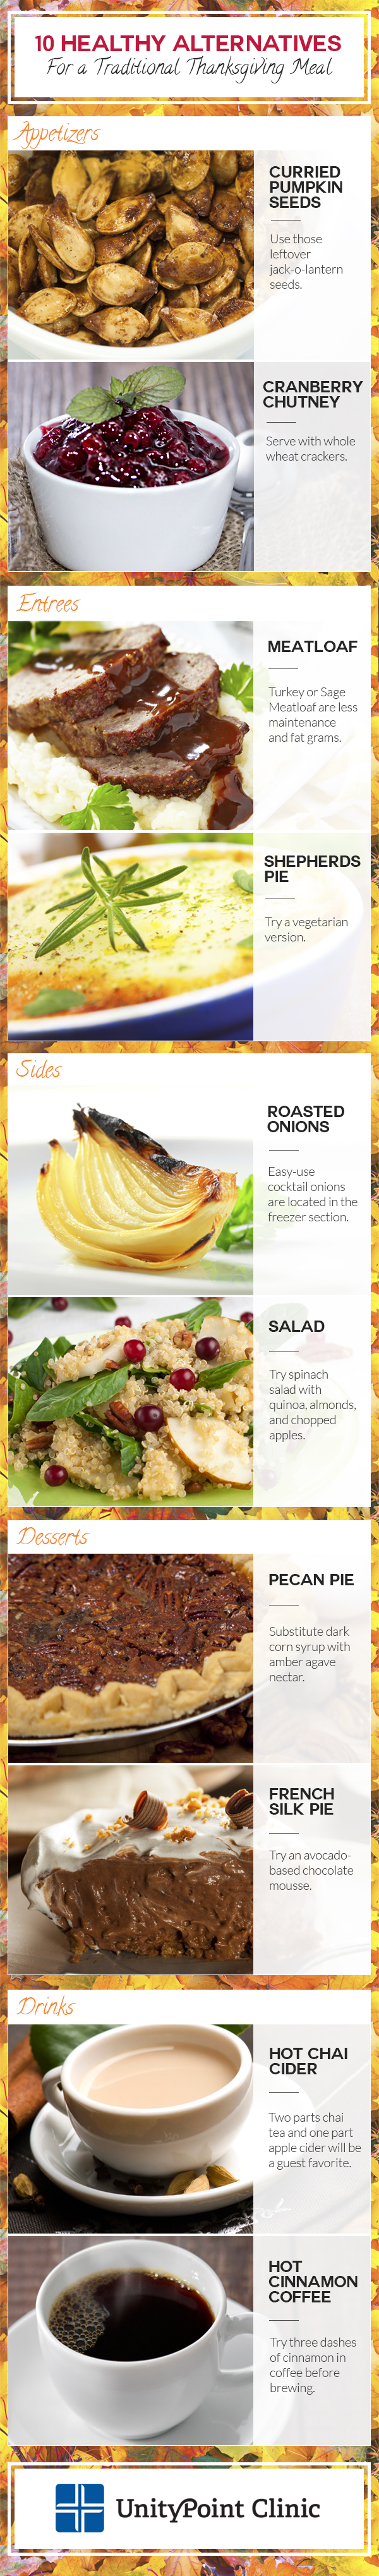 10 Healthy Alternatives for a Traditional Thanksgiving Meal